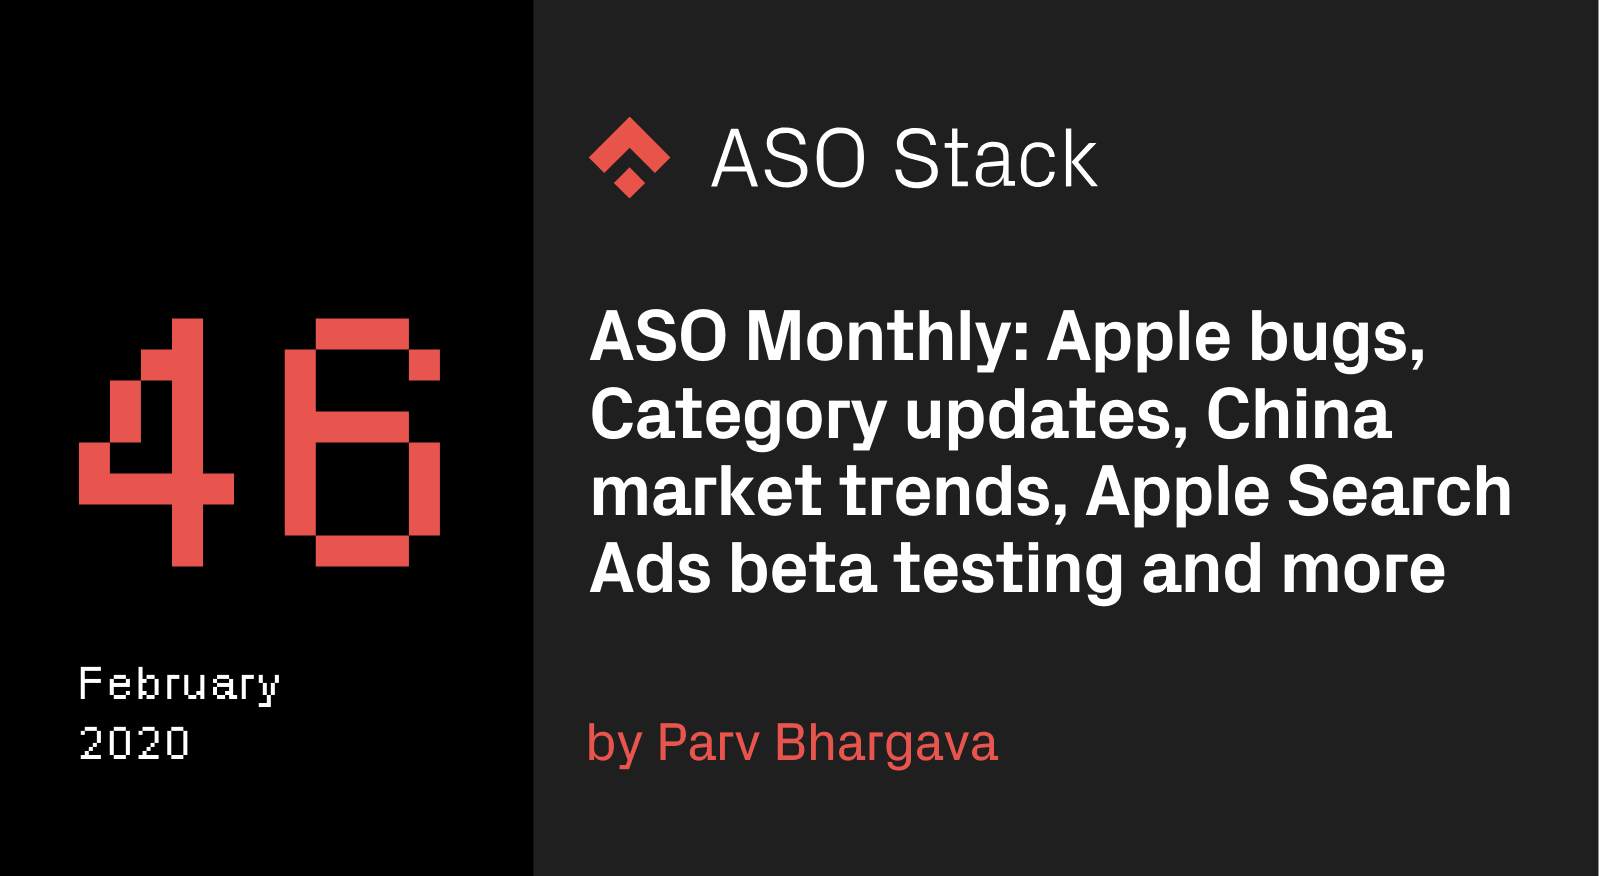 ASO Monthly #46 February 2020- Apple bugs, category updates, China market trends, Apple Search Ads beta testing and more